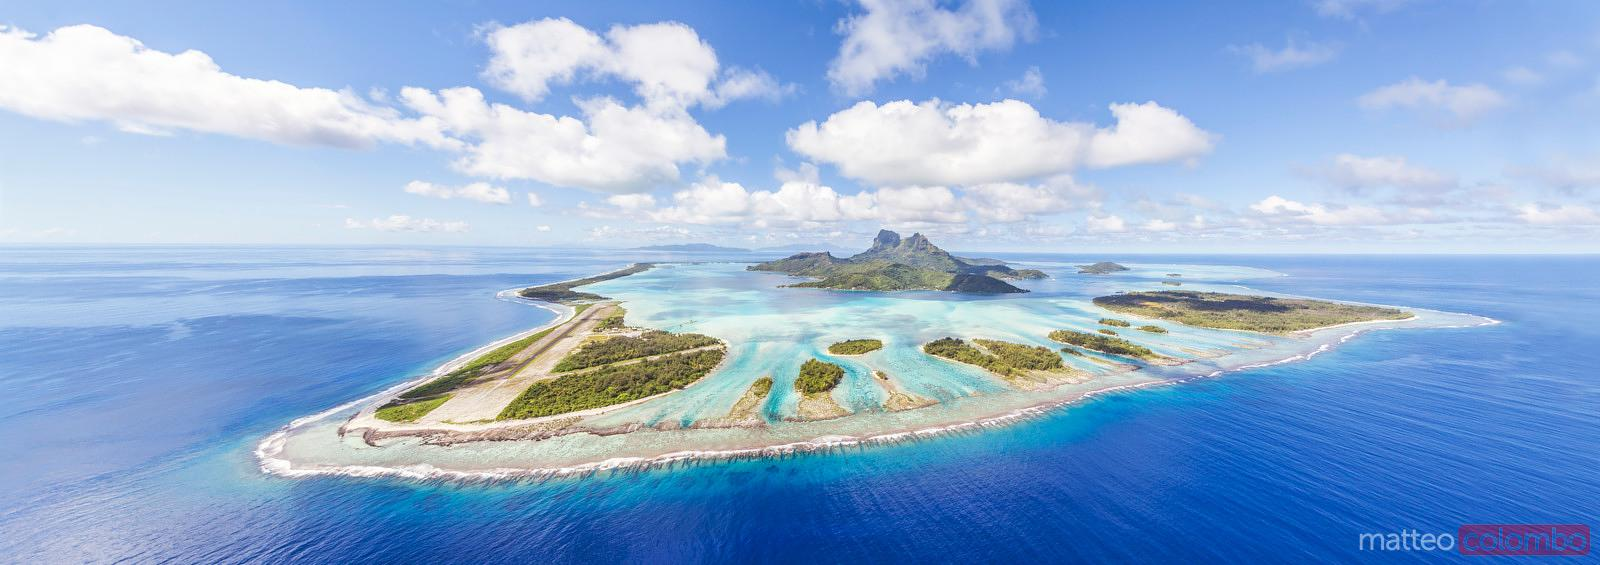 Matteo Colombo Travel Photography Panoramic Aerial View Of